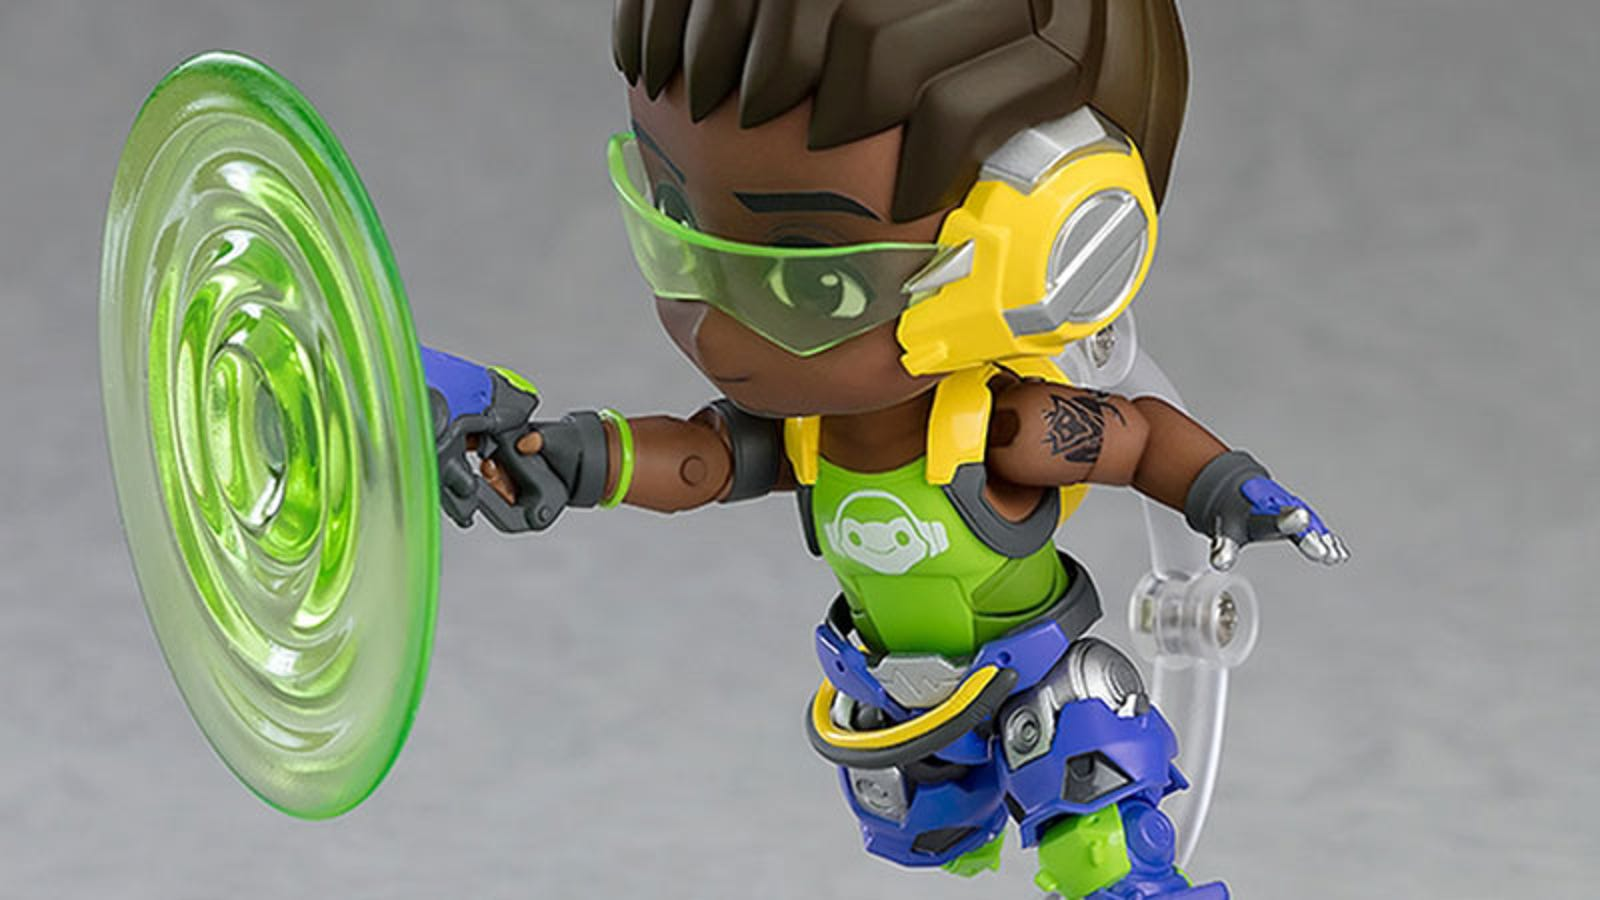 Toy Somehow Makes Overwatch's Lucio Even More Adorable